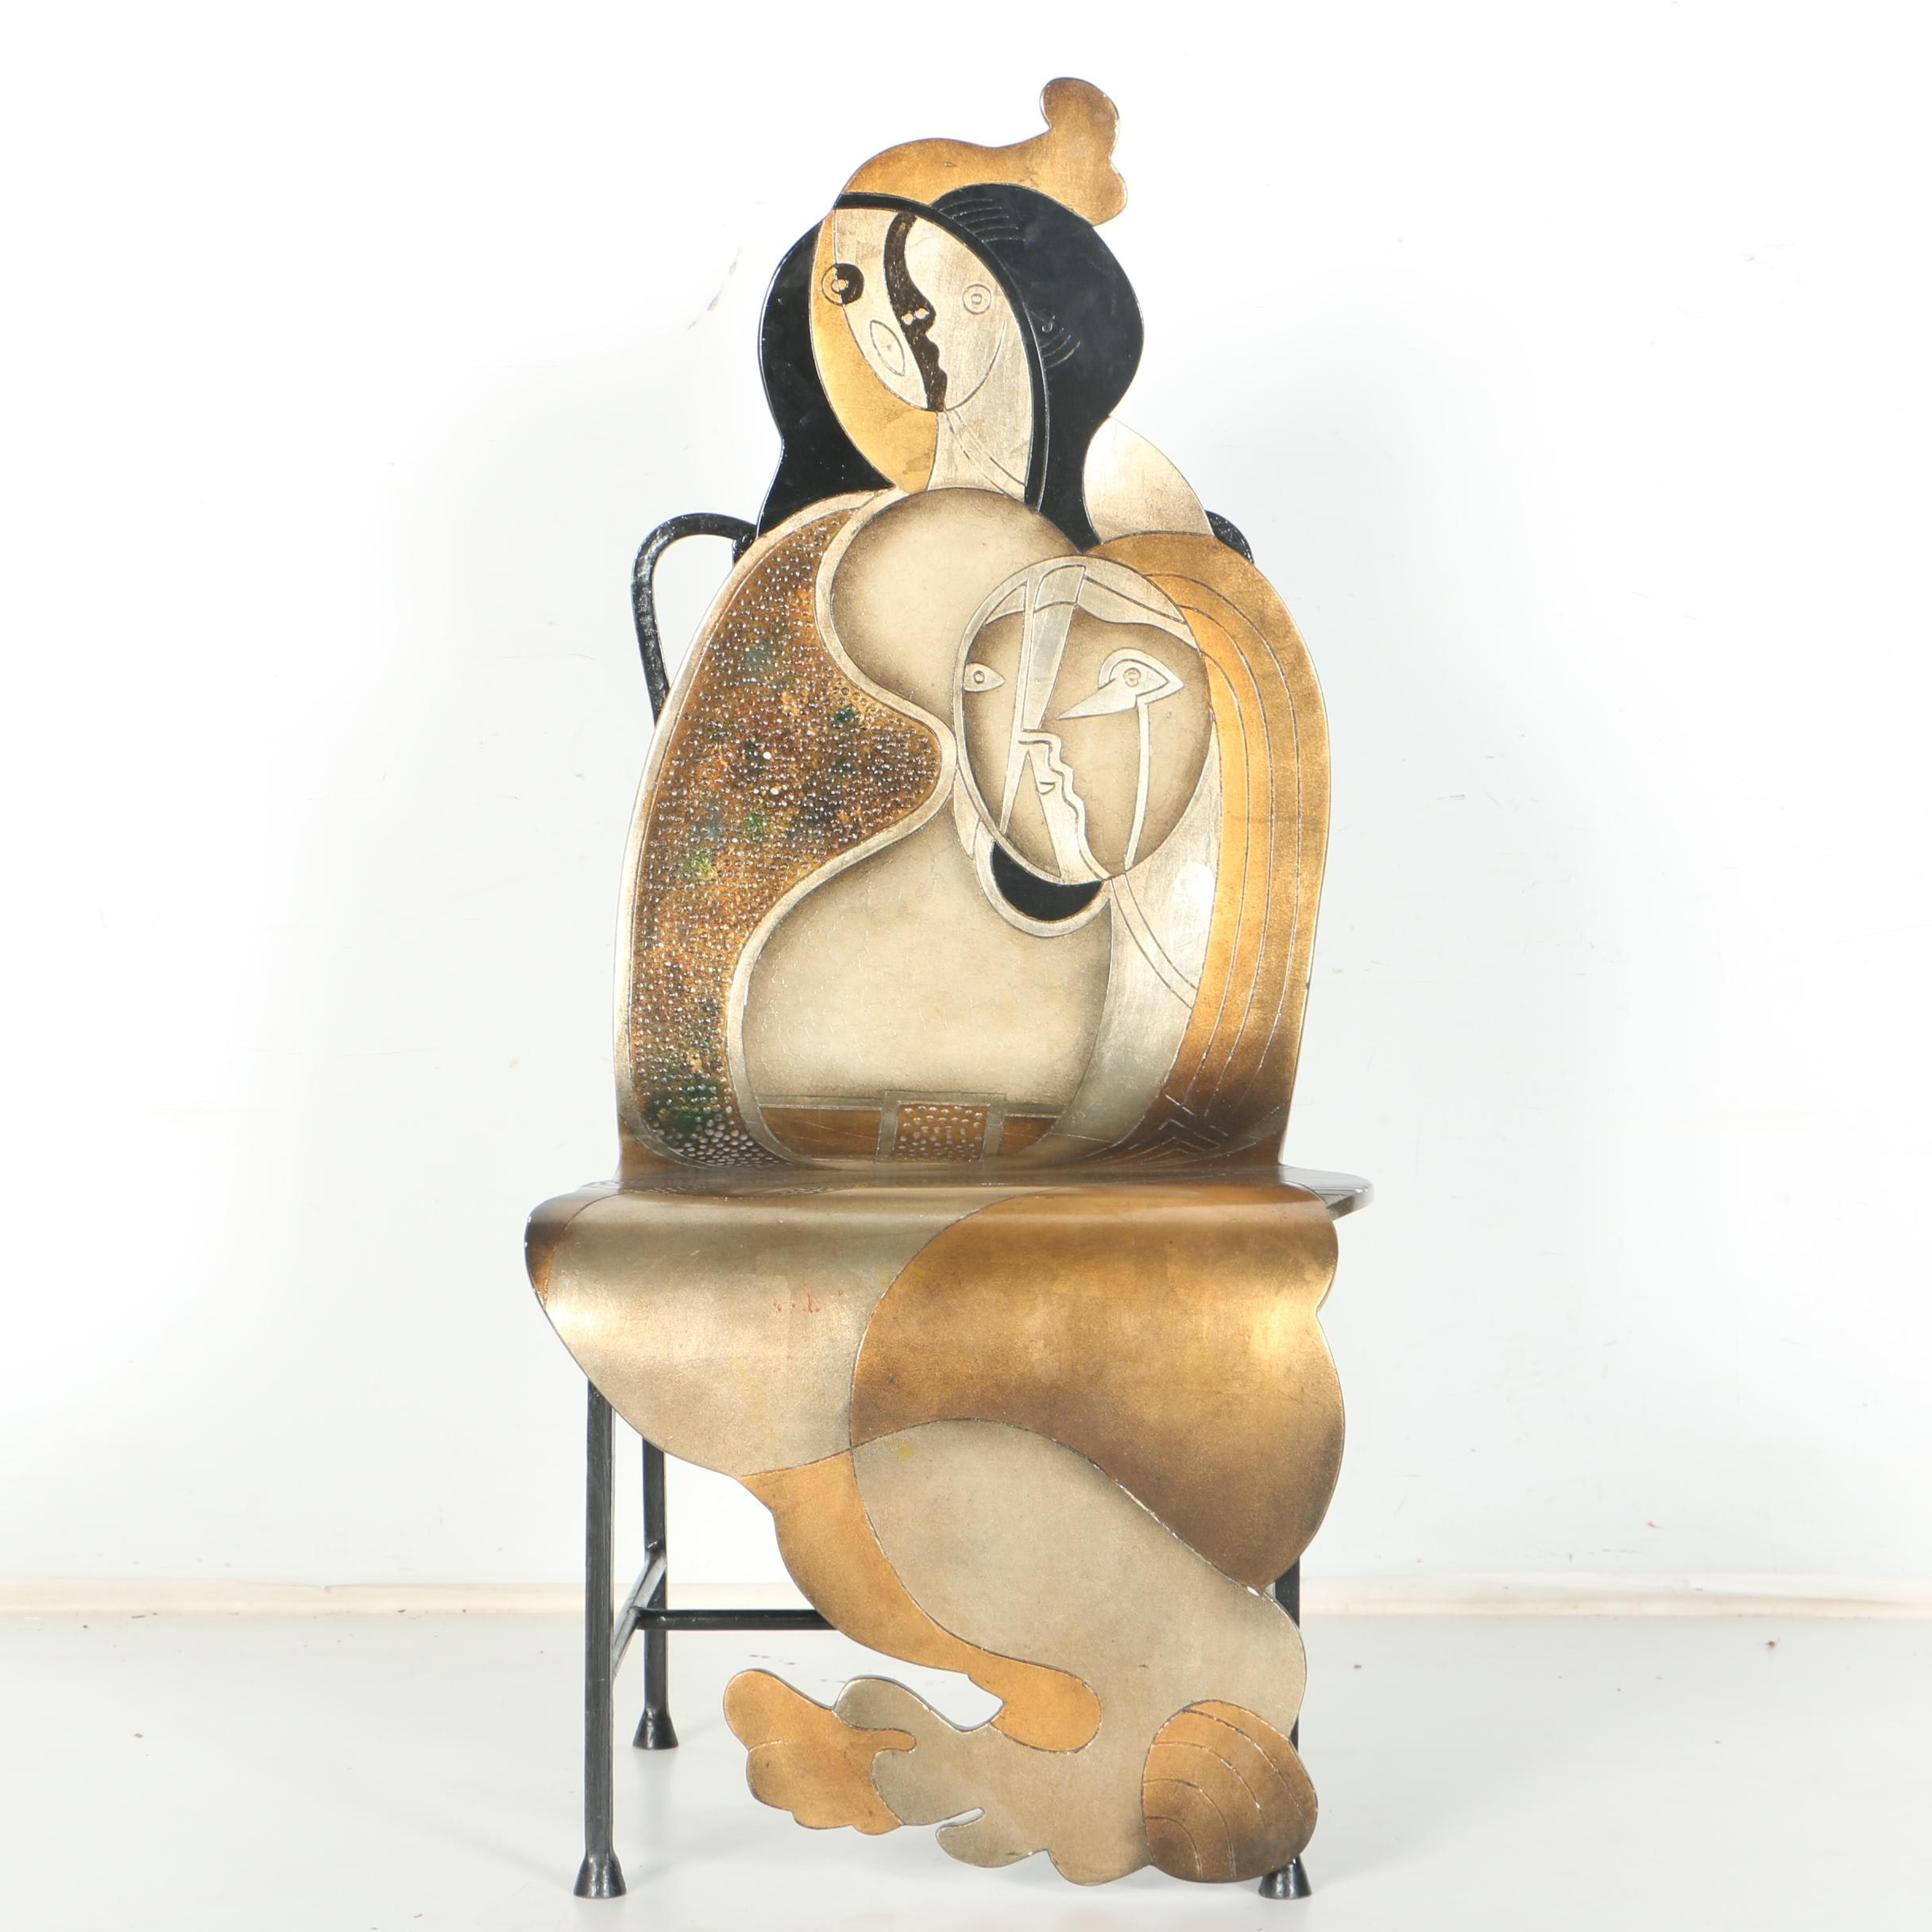 Original Metal Work Chair in Cubist Style